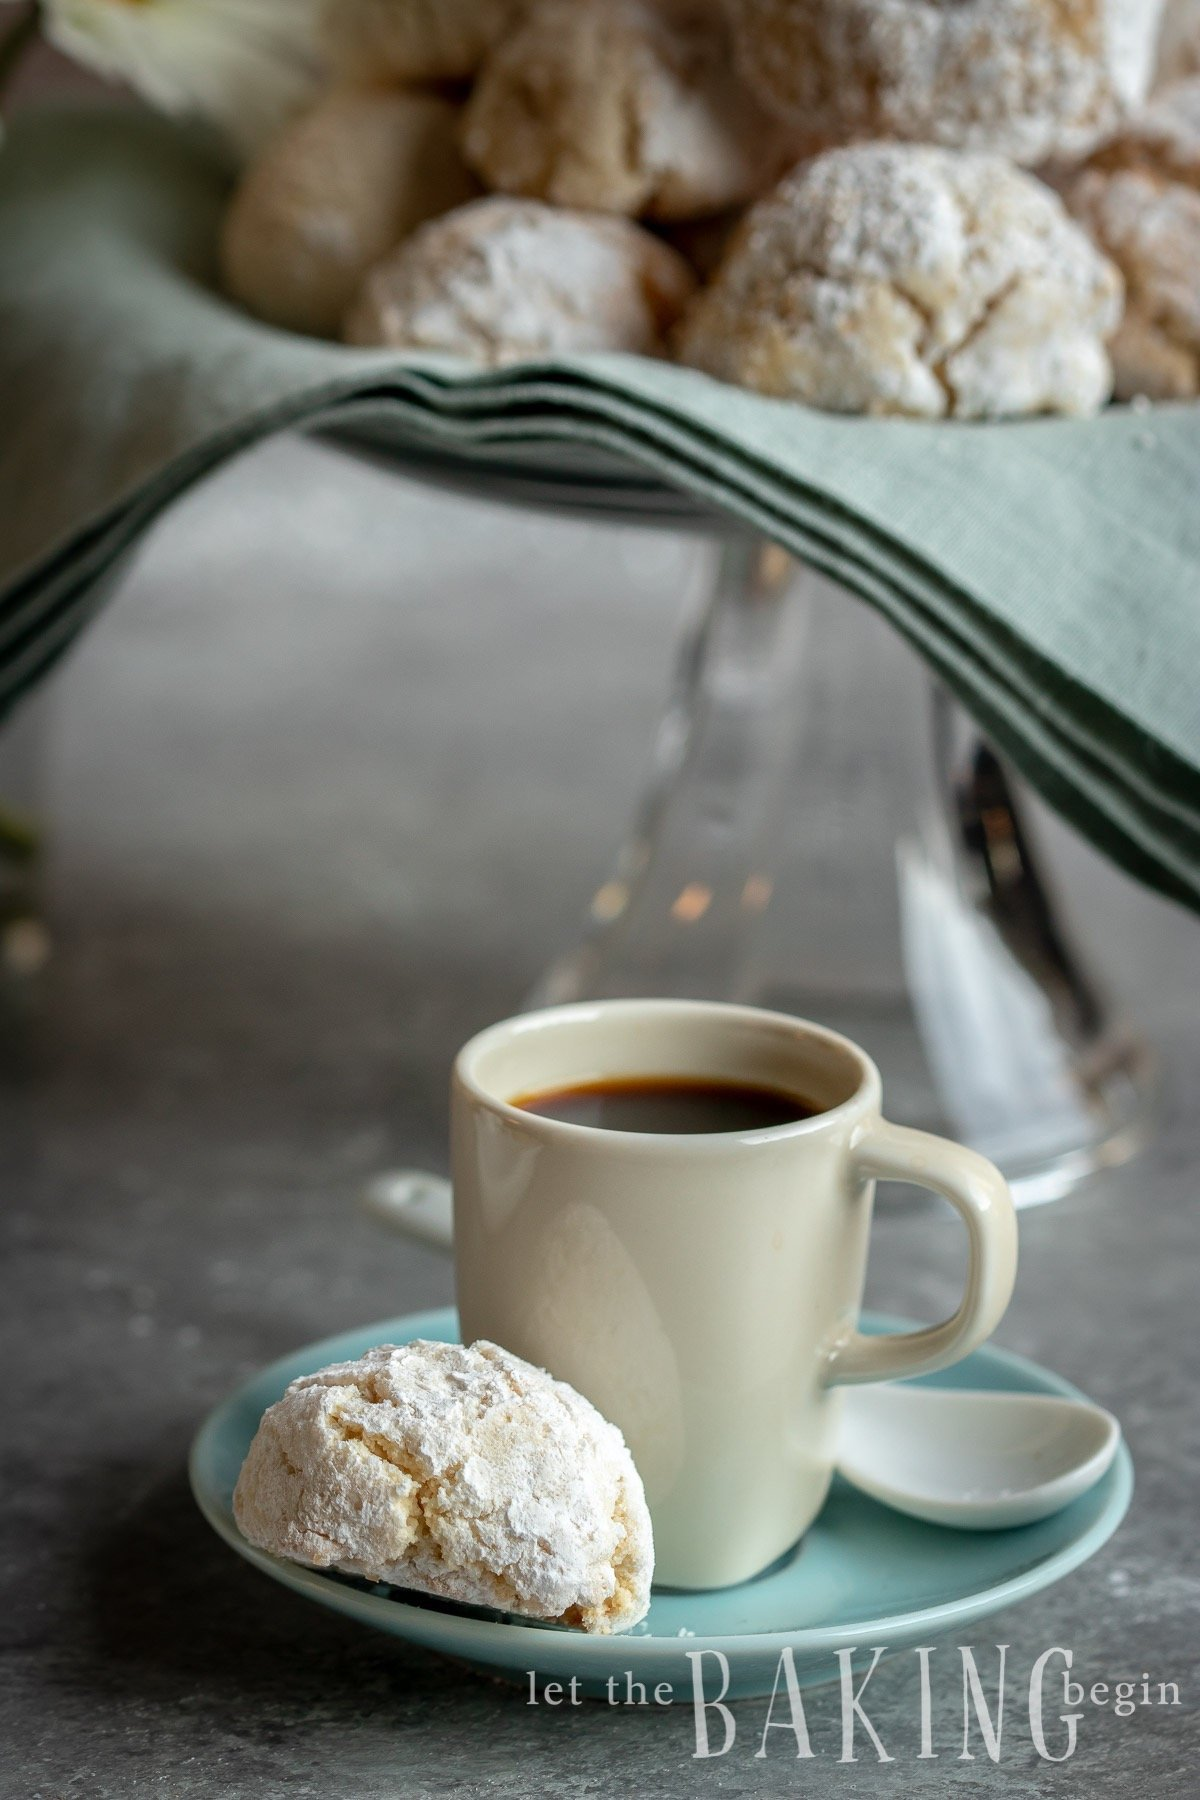 Amaretti Cookies are small gluten and dairy-free confections that are made with egg whites, almond flour and sugar. The cookies can range from crispy like biscotti, to almost chewy texture and have the most amazing almond flavor and aroma.